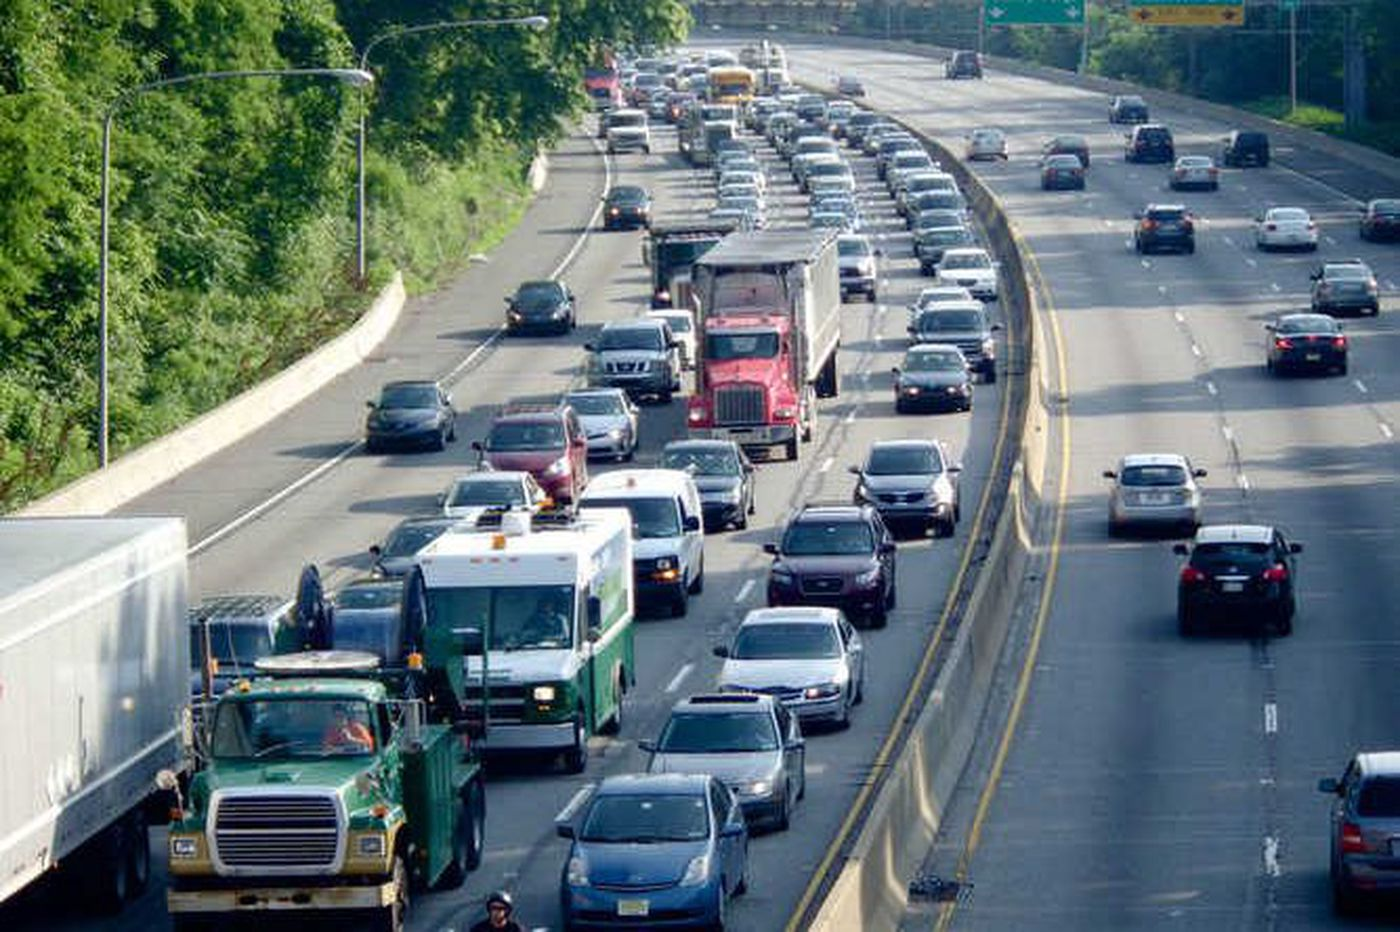 Feds: Bribes to PennDot official put dozens of untested, undocumented drivers on Philly roads